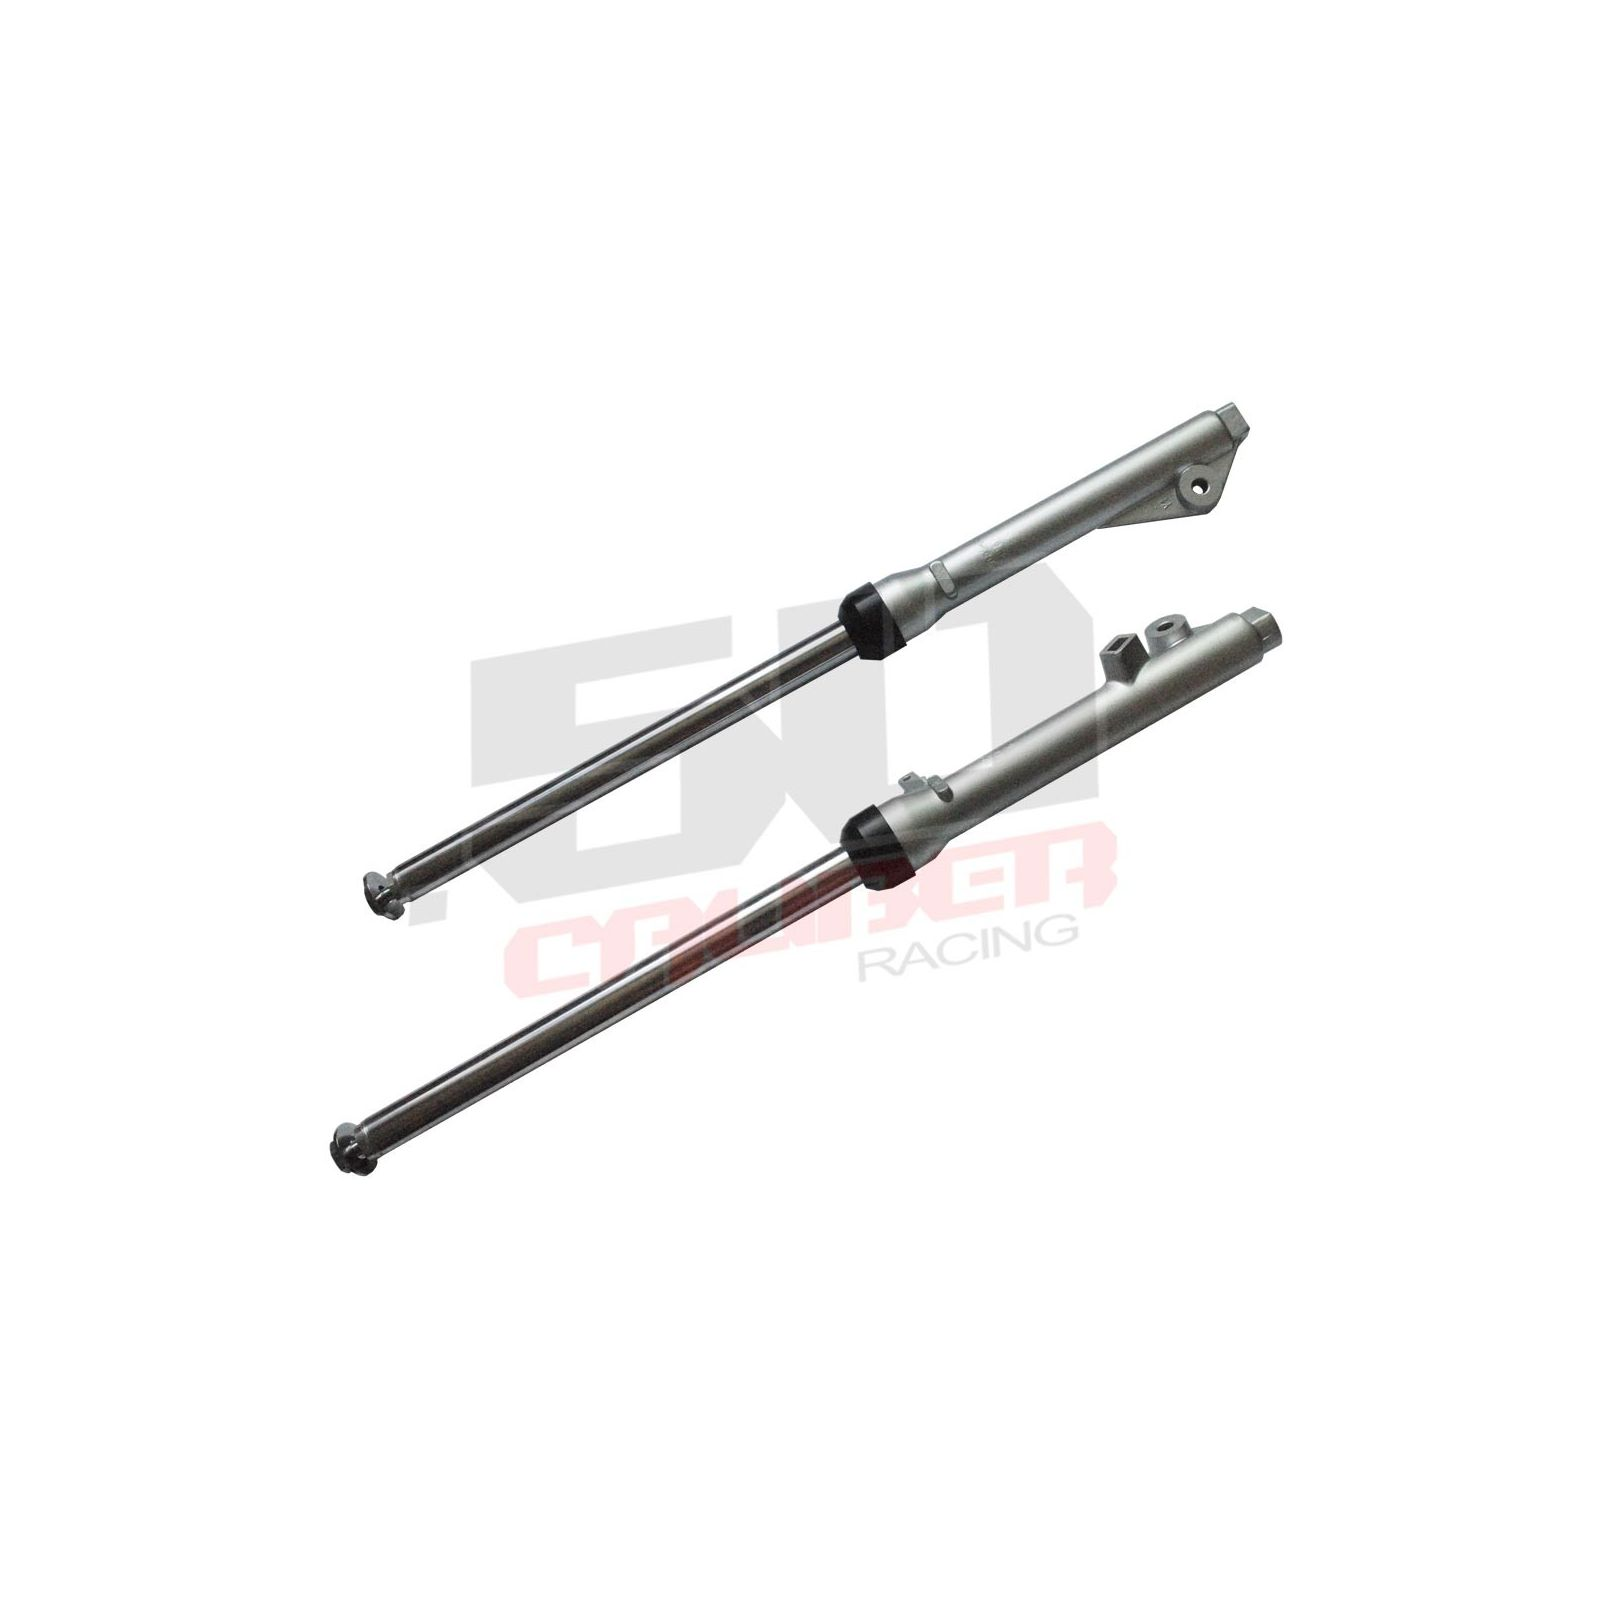 Replacement Front Fork Set For Yamaha Pw80 Mini Pit Bike